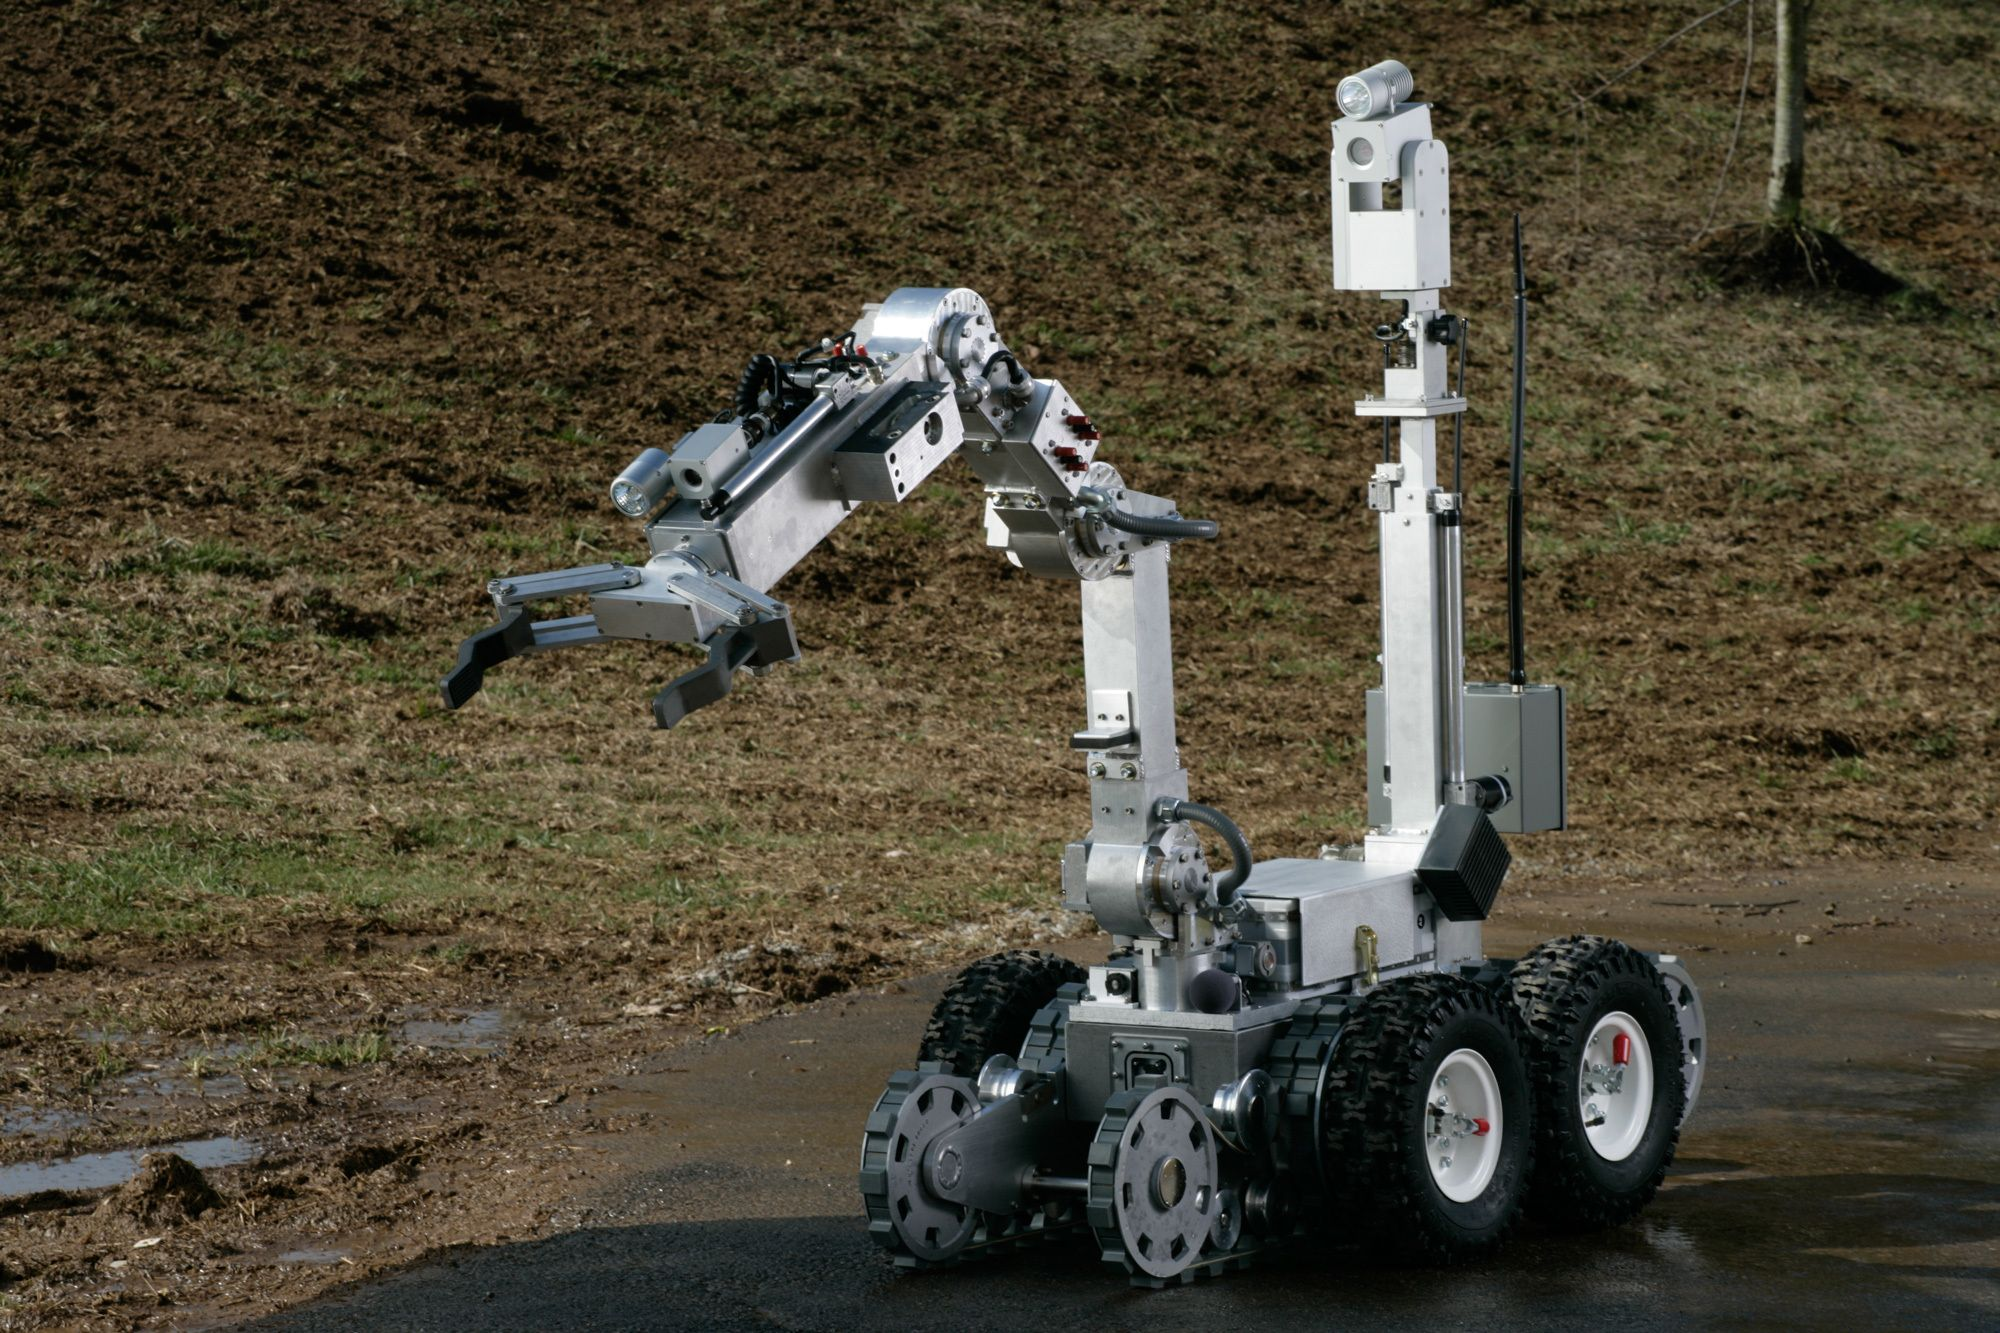 A New Weapon for SWAT Teams: Bomb-Squad Robots | Pinterest | Robot